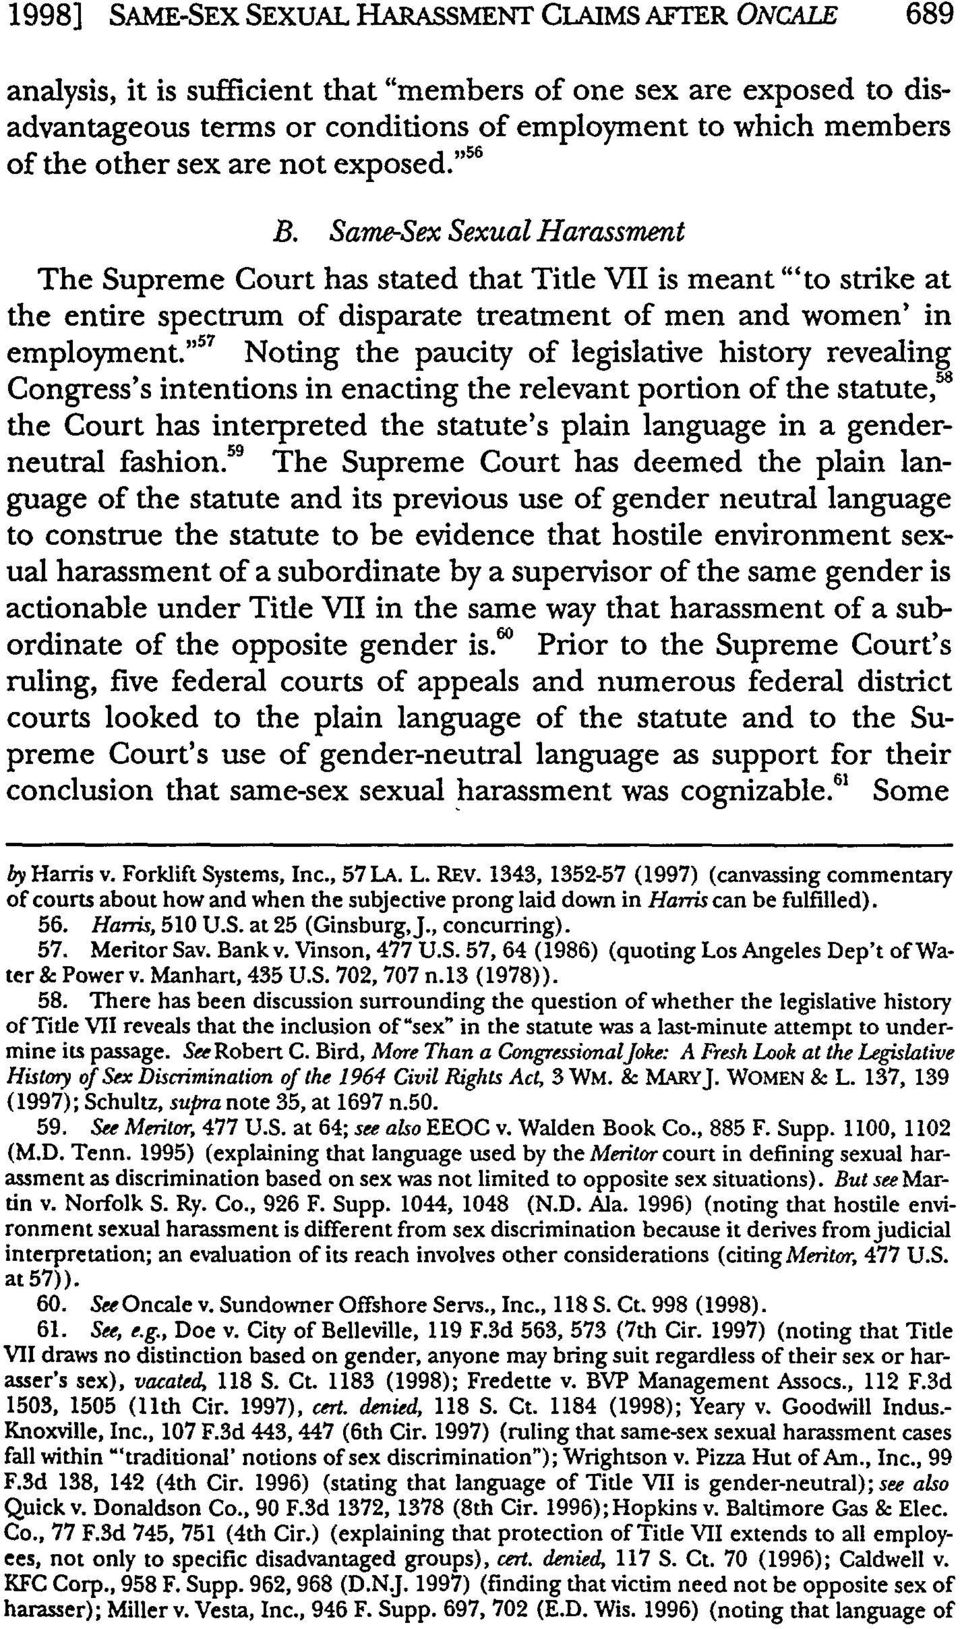 "Same-Sex Sexual Harassment The Supreme Court has stated that Title VII is meant ""'to strike at the entire spectrum of disparate treatment of men and women' in employment."